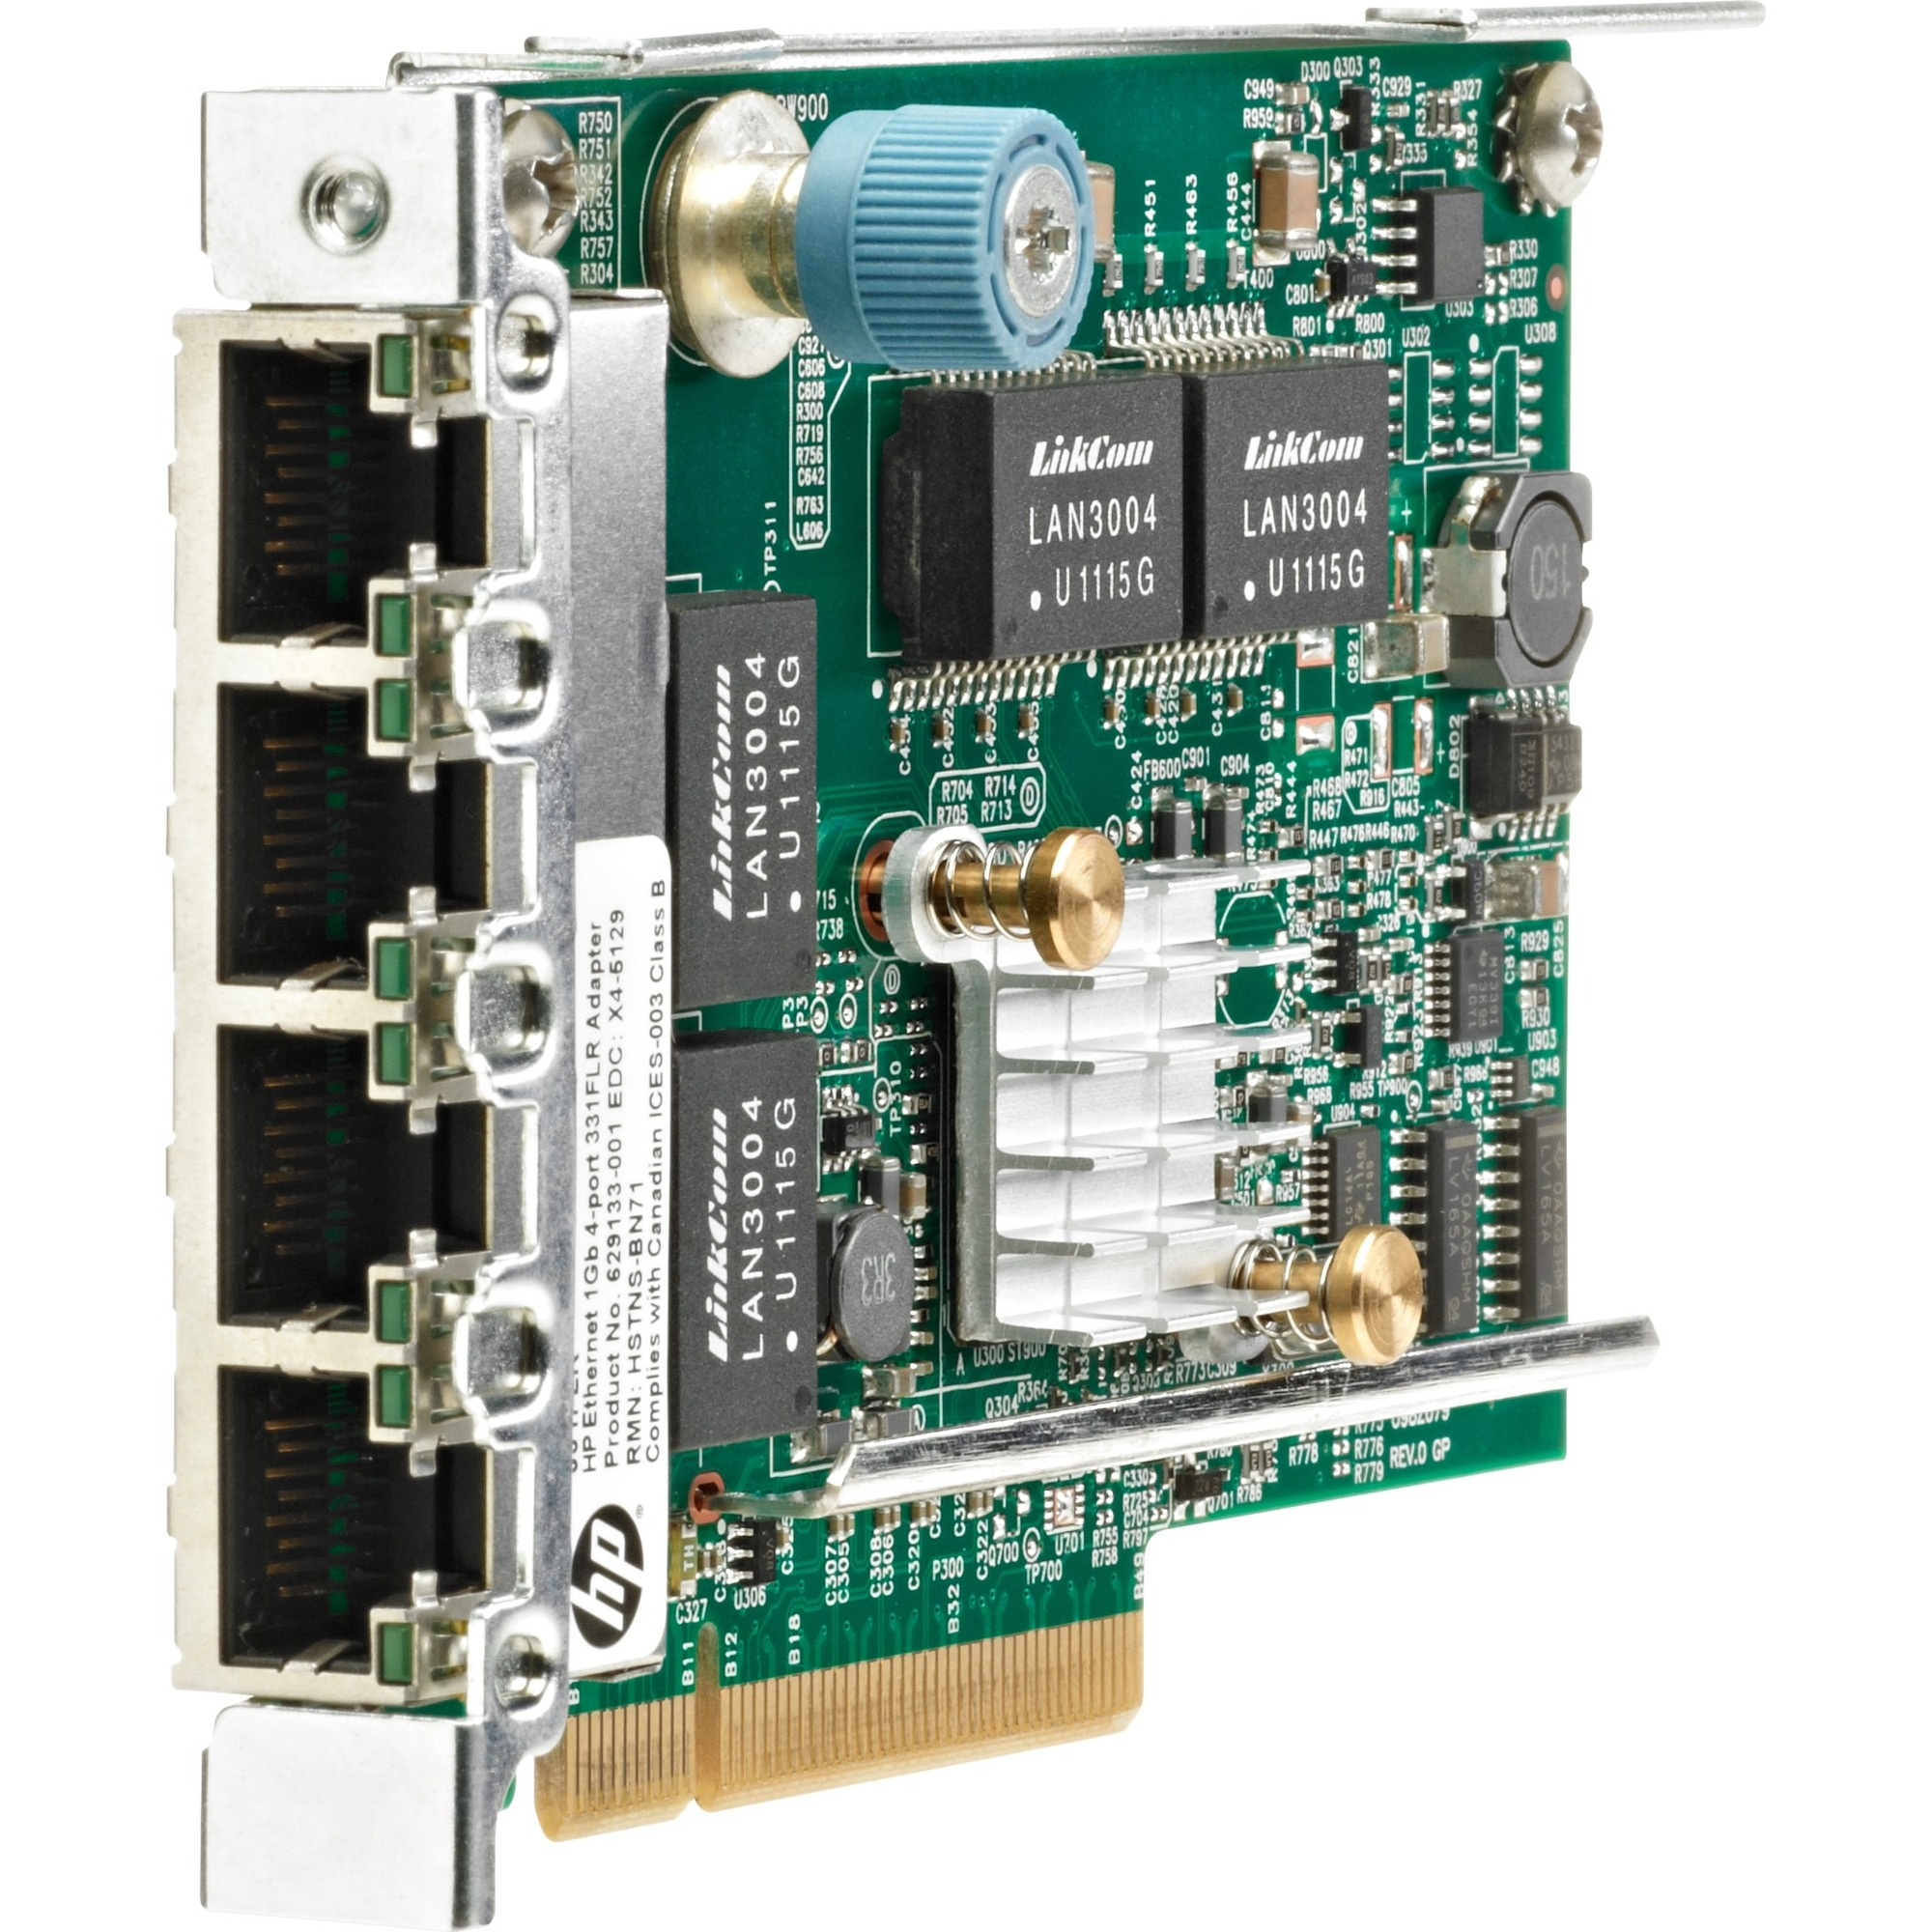 Hp 331flr Gigabit Ethernet Card For Server Pci Express 20 X4 4 Ports Twisted Pair Sound Channel With Game Port